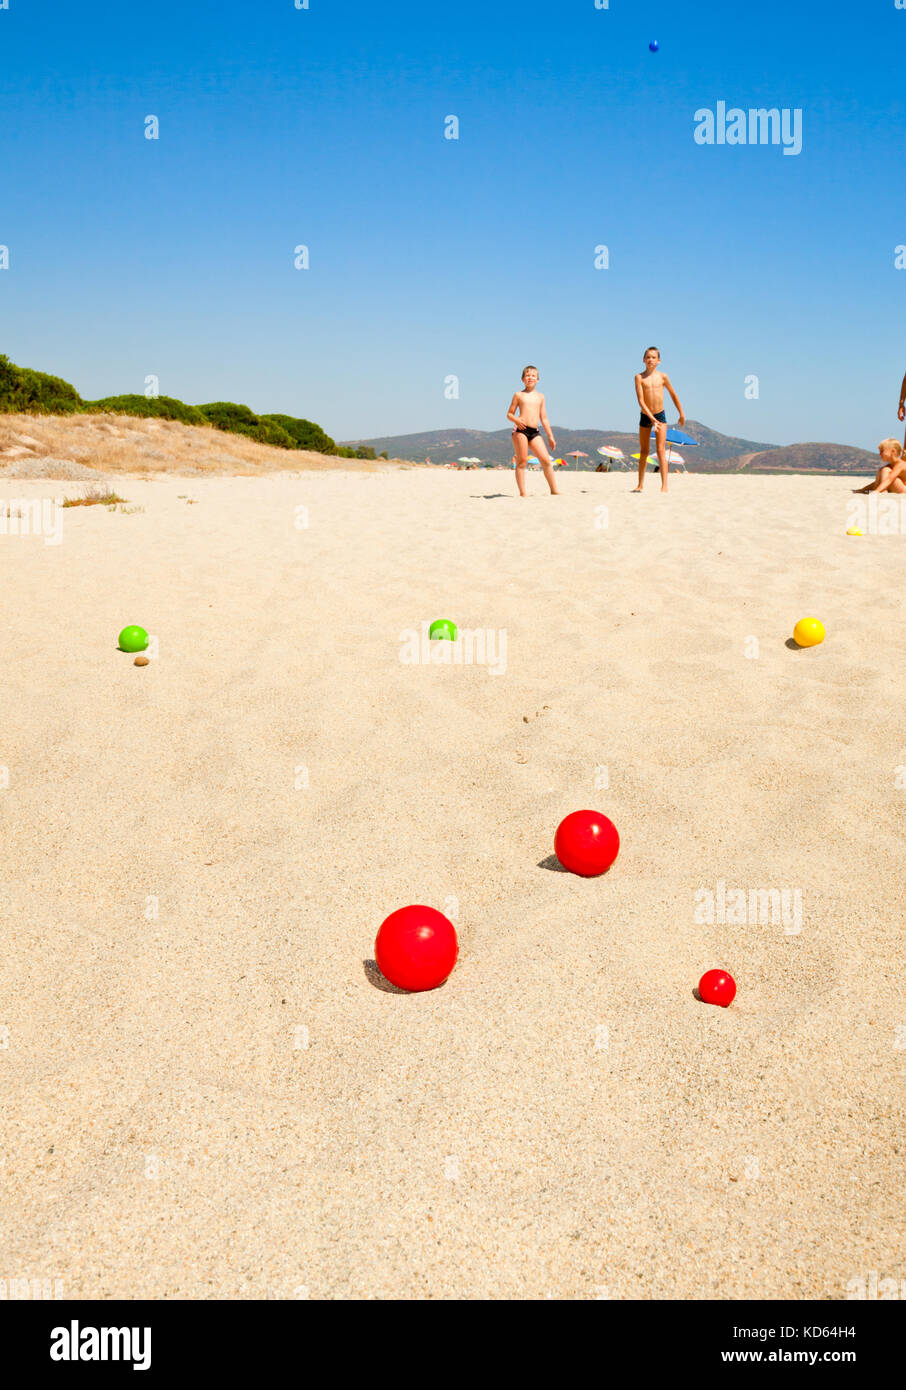 Boys playing petanque on a beach, focus on balls - Stock Image